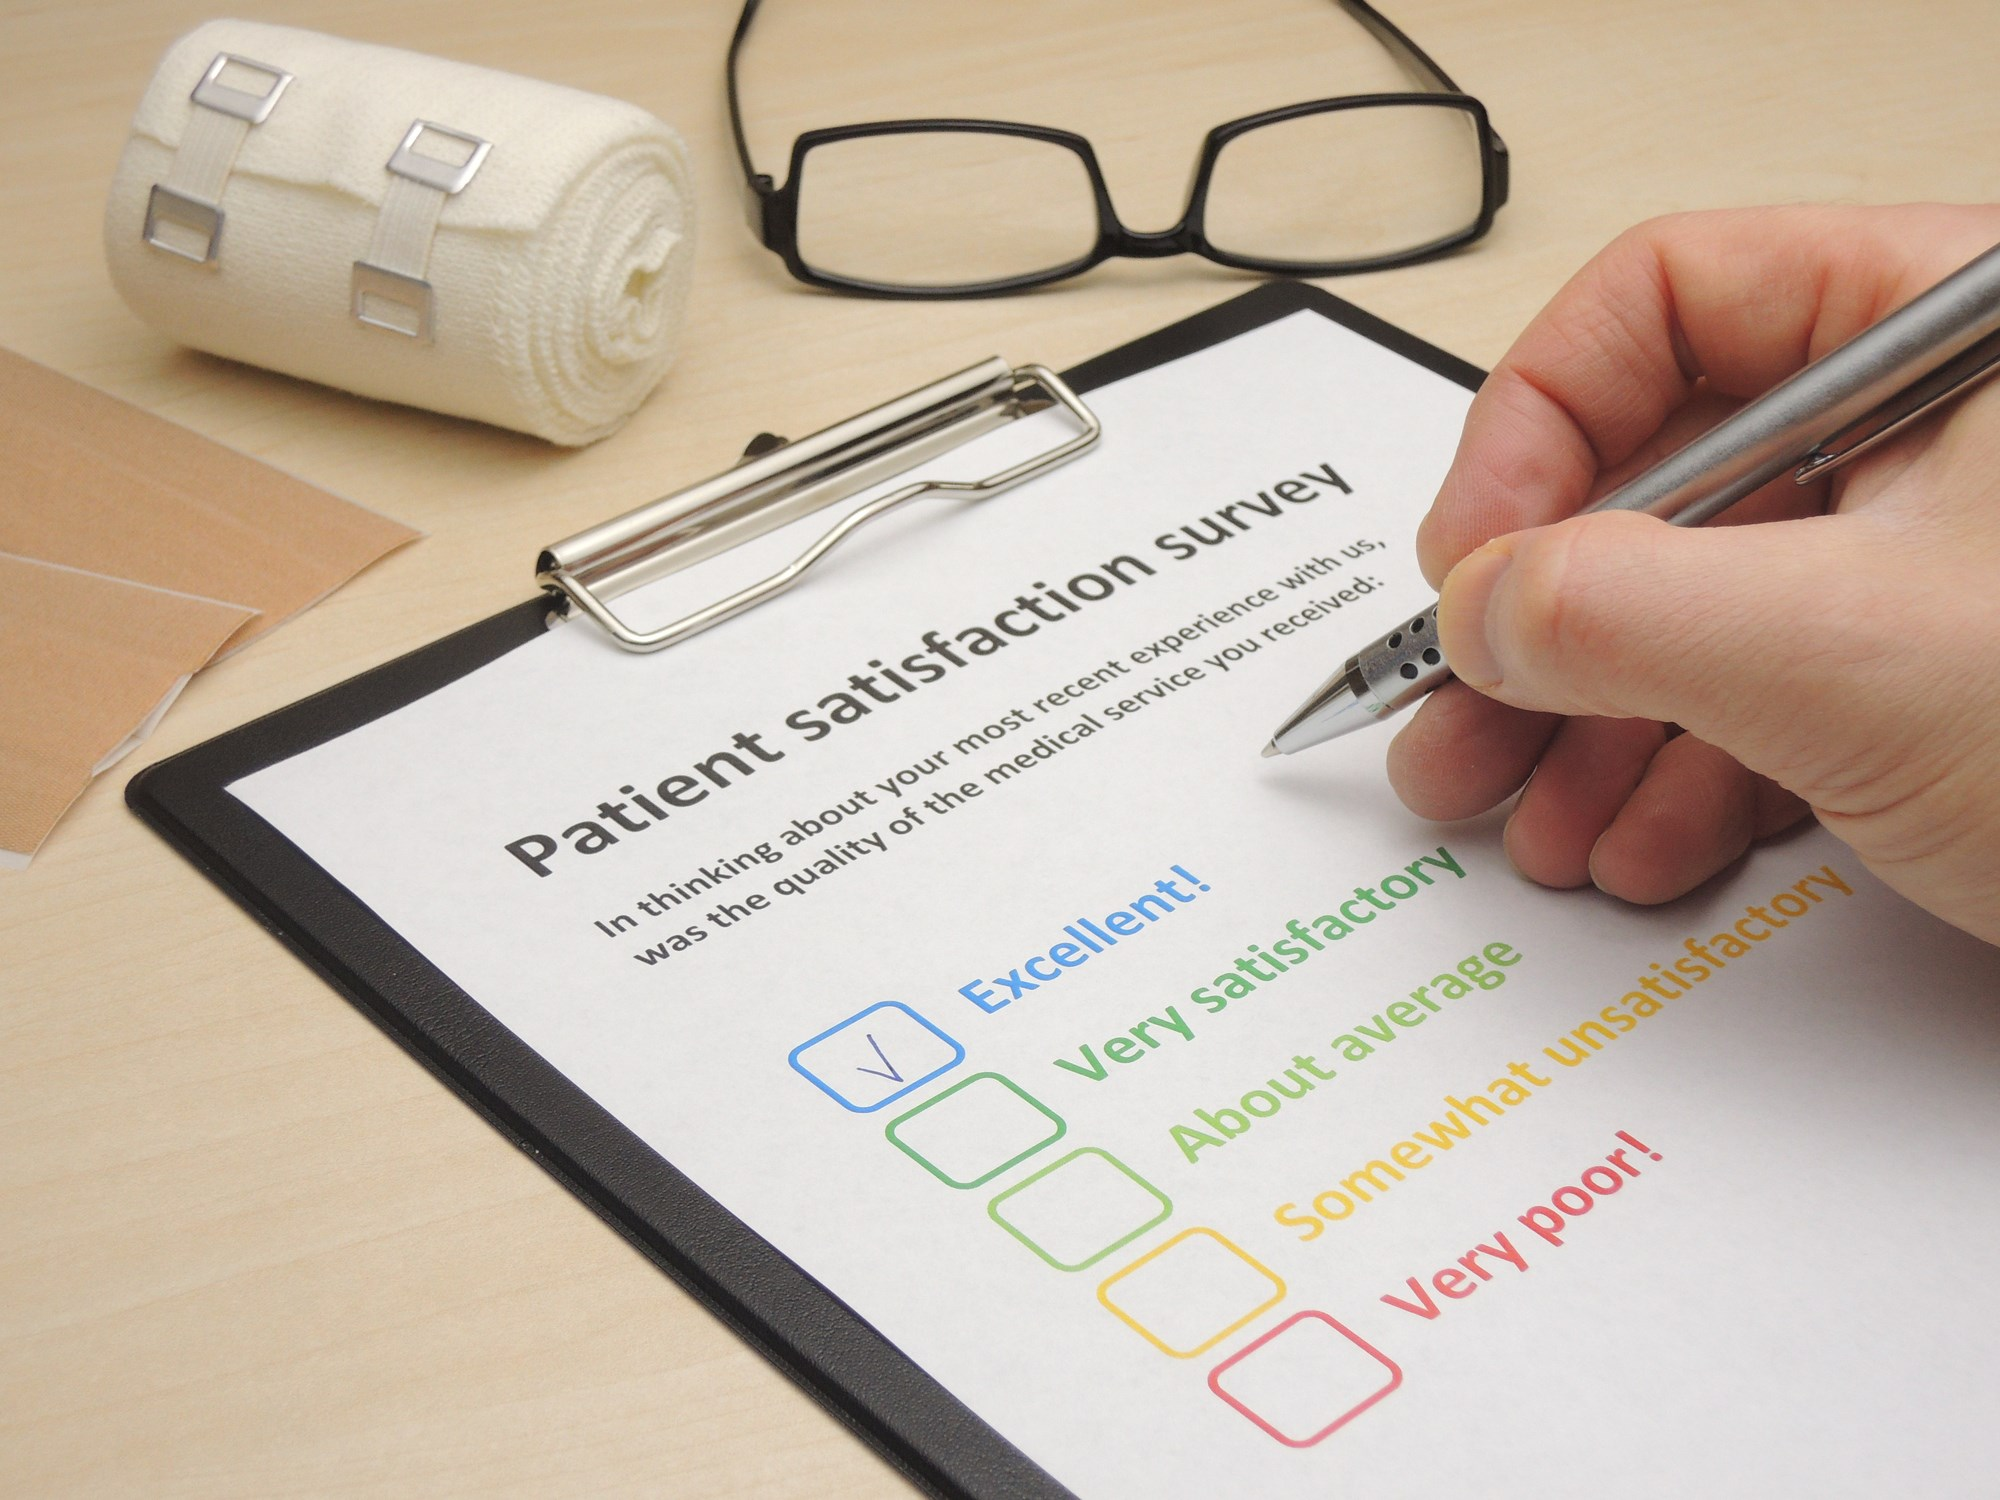 Patient perception of provider concern was shown to impact perceived satisfaction.